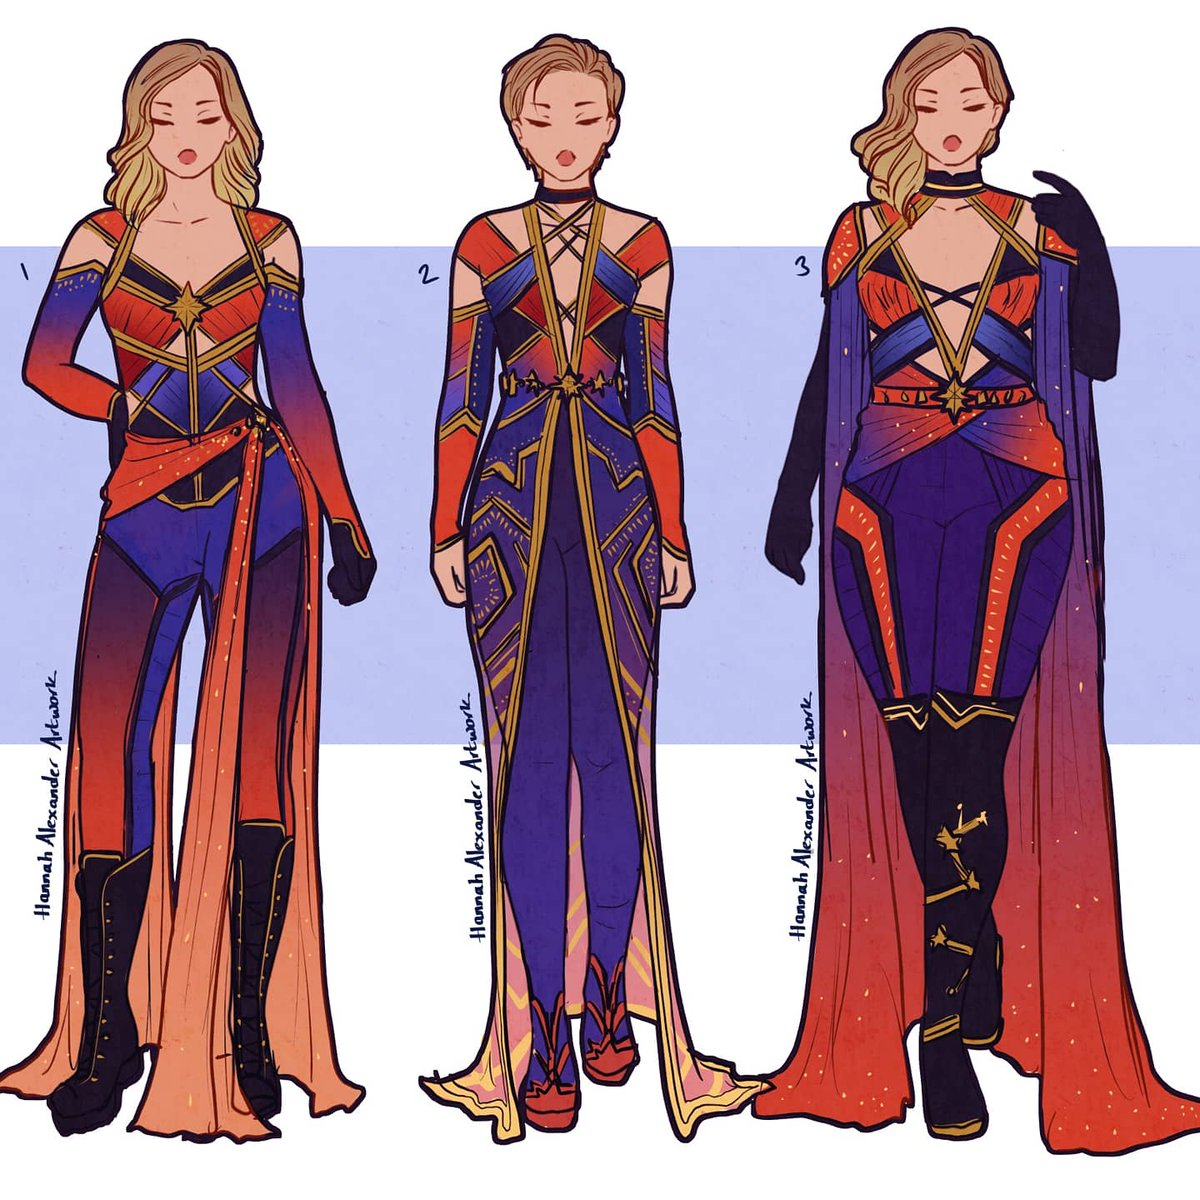 Hannah Alexander Artwork On Twitter Captain Marvel Couture Design Sketches Let Me Know Which One You Like Best Captainmarvel Ezt a játékot tartalmazó csomagok. hannah alexander artwork on twitter